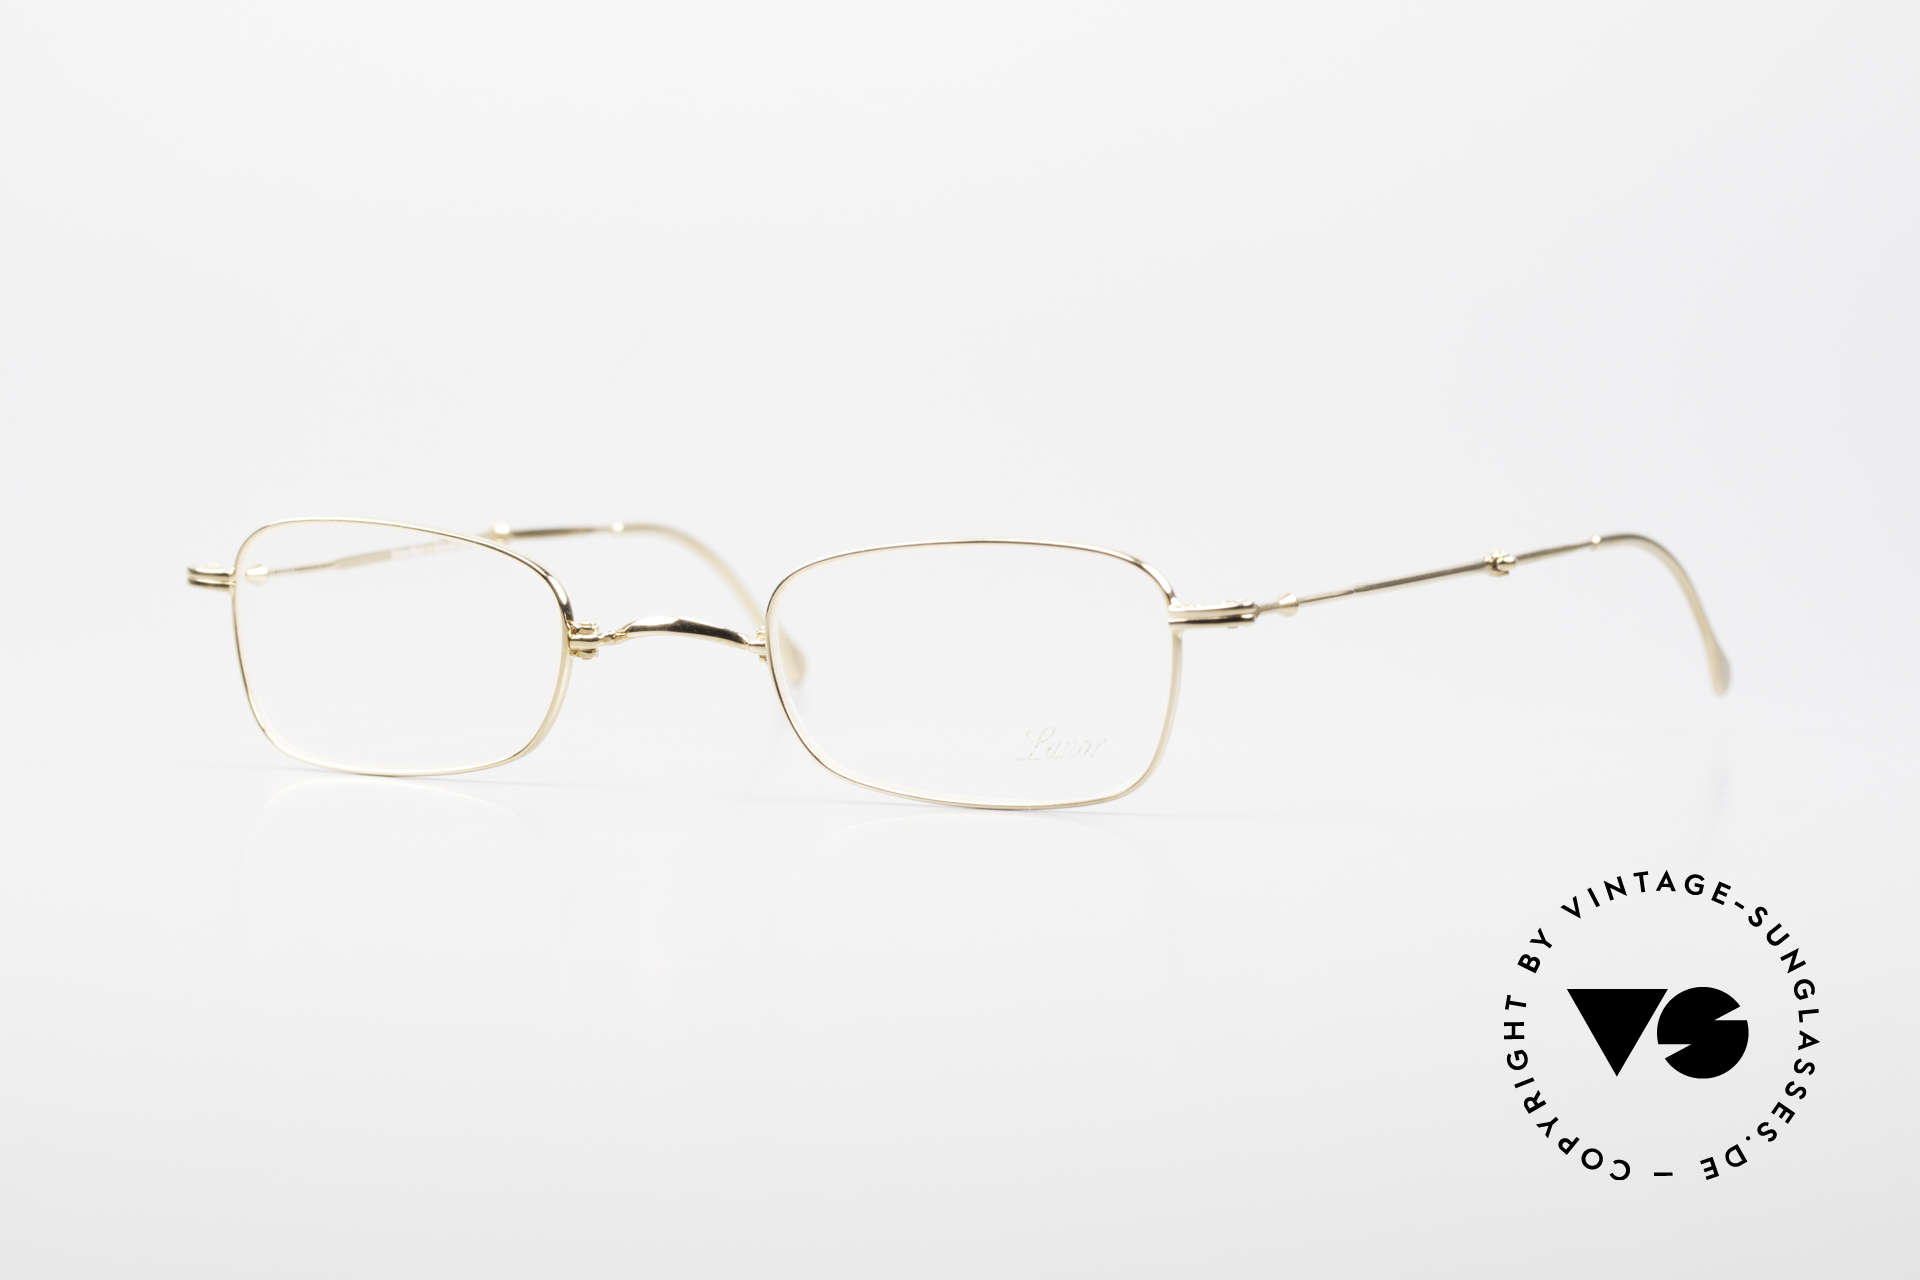 Lunor XXV Folding 02 Foldable Frame Gold Plated, rare, old Lunor folding eyeglasses XXV 02 in size 43/22, Made for Men and Women